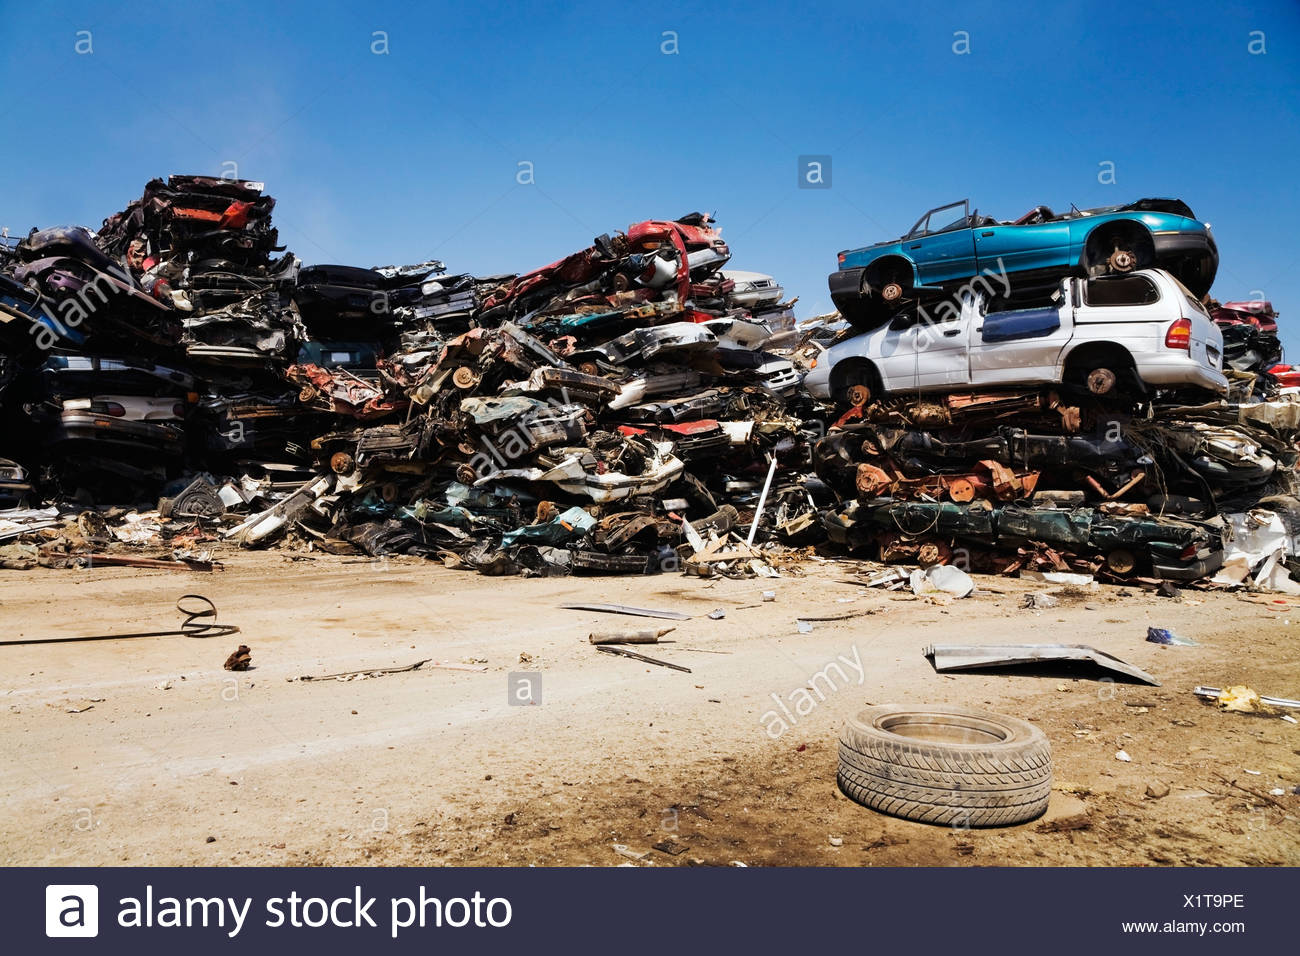 Quebec, Canada; Stacked And Crushed Automobiles At A Scrap Metal Recycling Yard - Stock Image